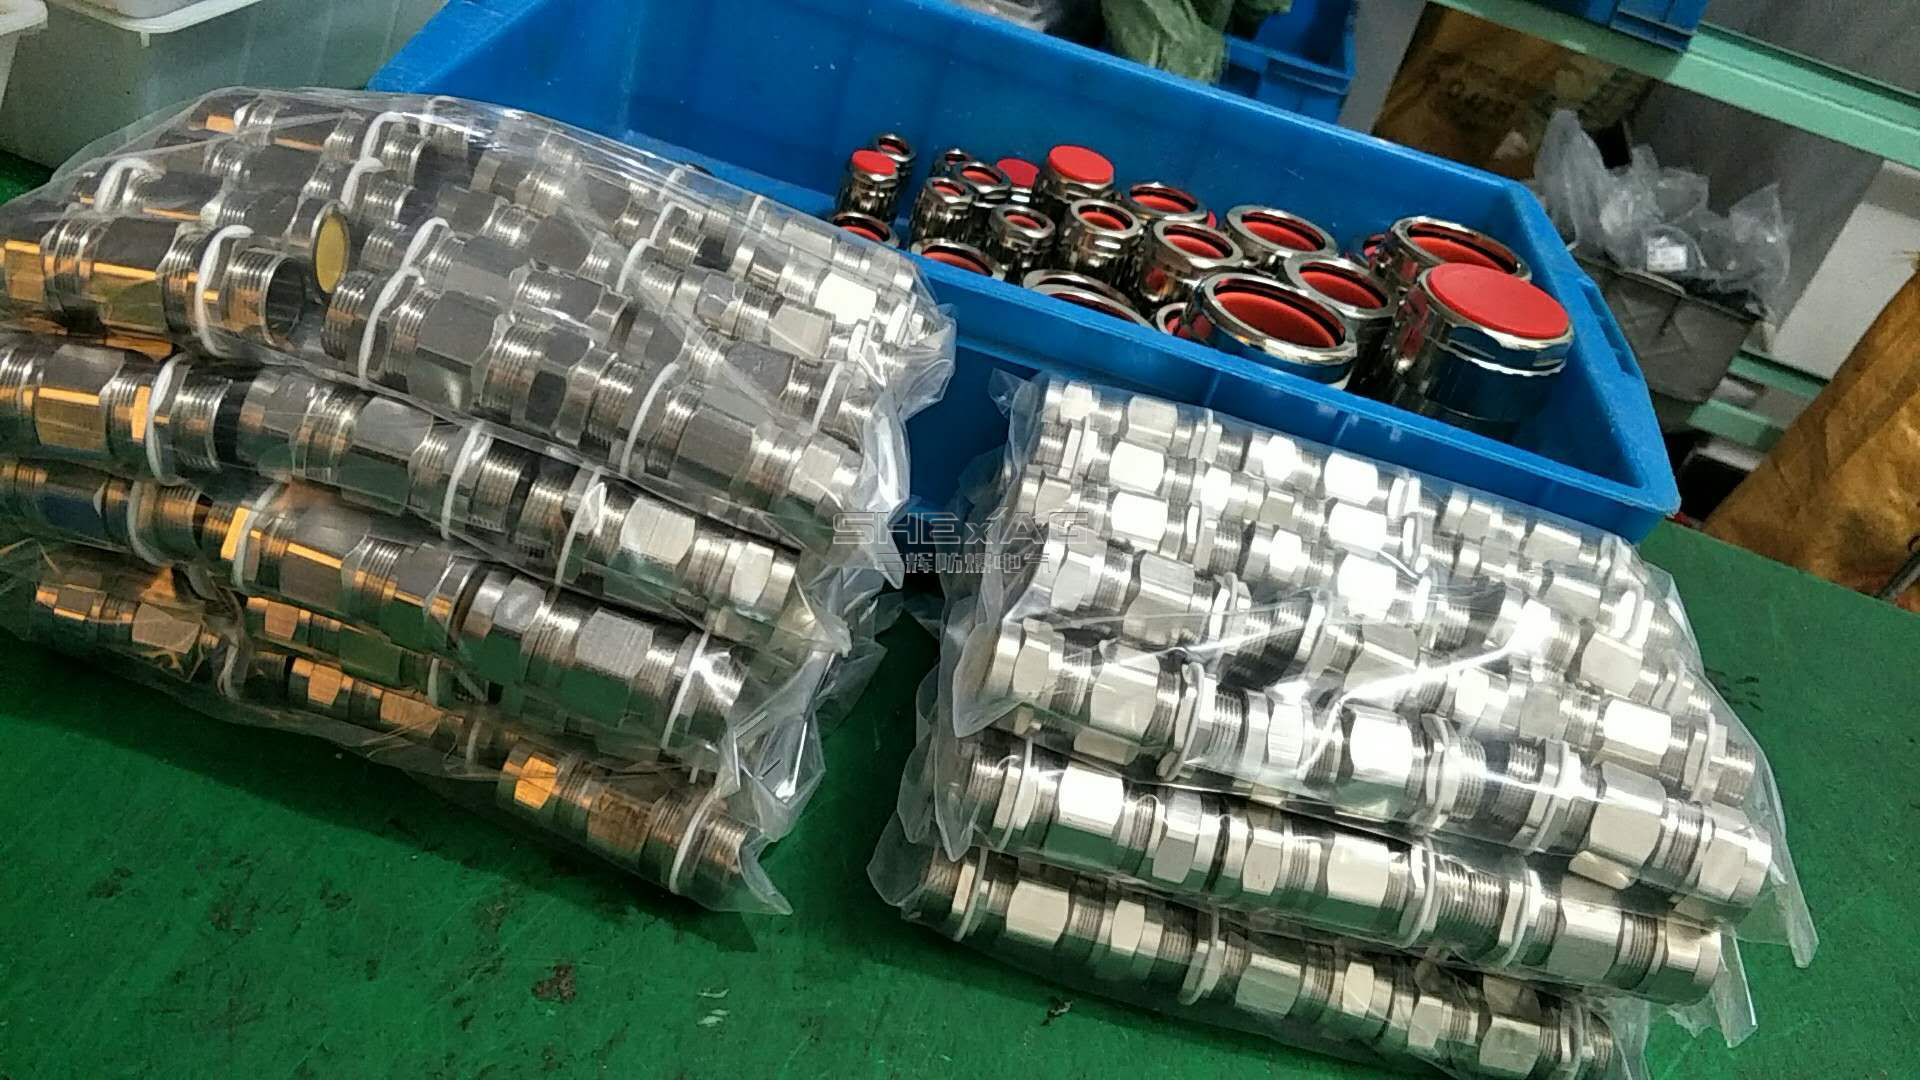 Double Sealed Explosion Proof Cable Gland